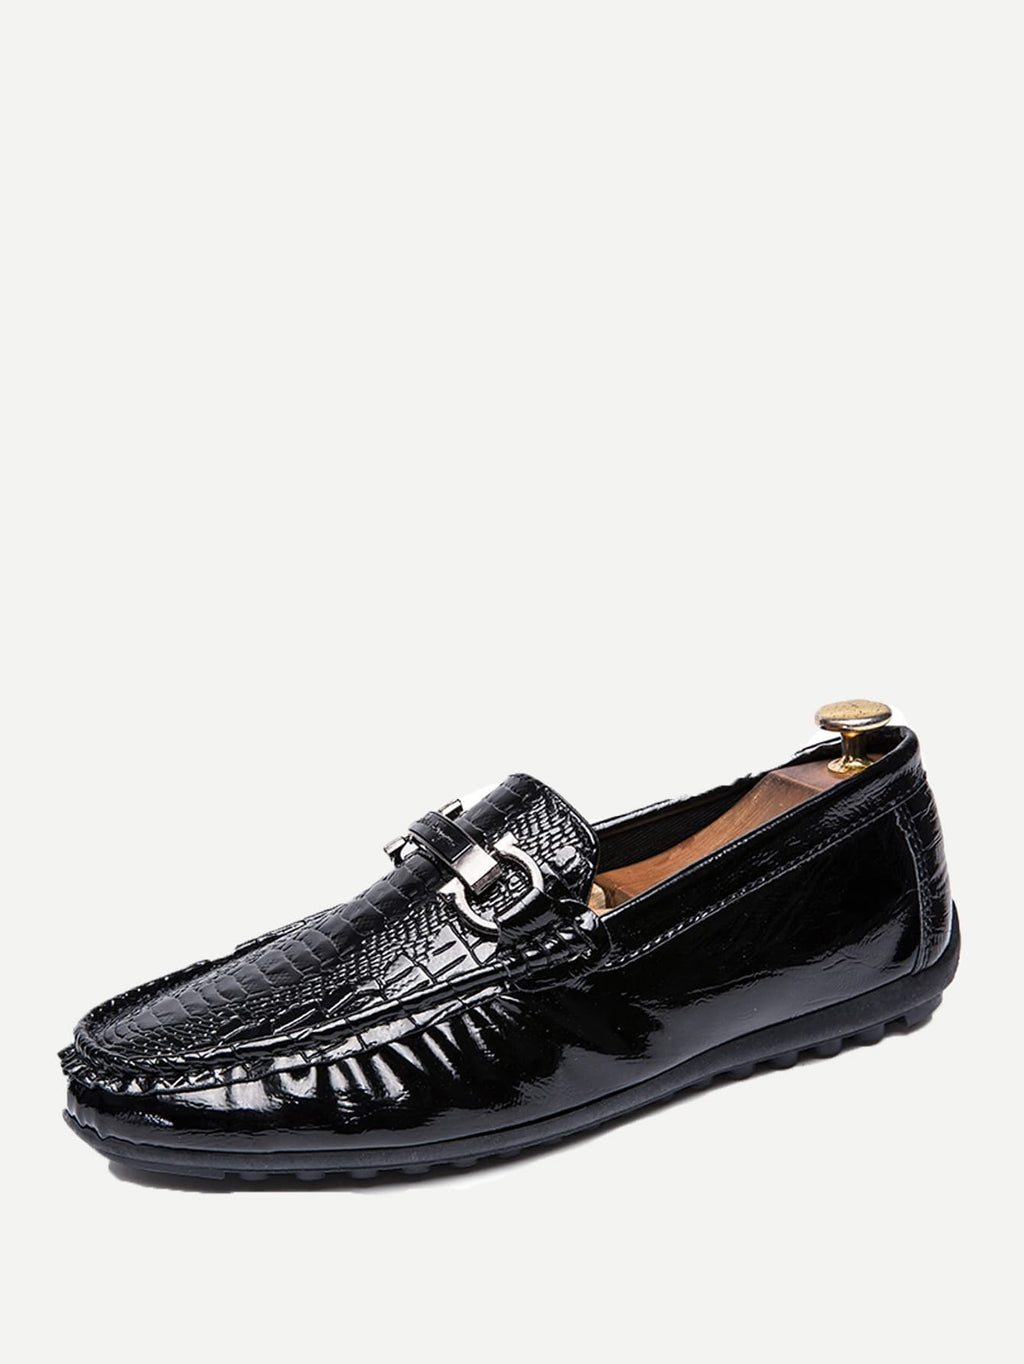 Men's Casual Shoes - Croc Embossed Loafers